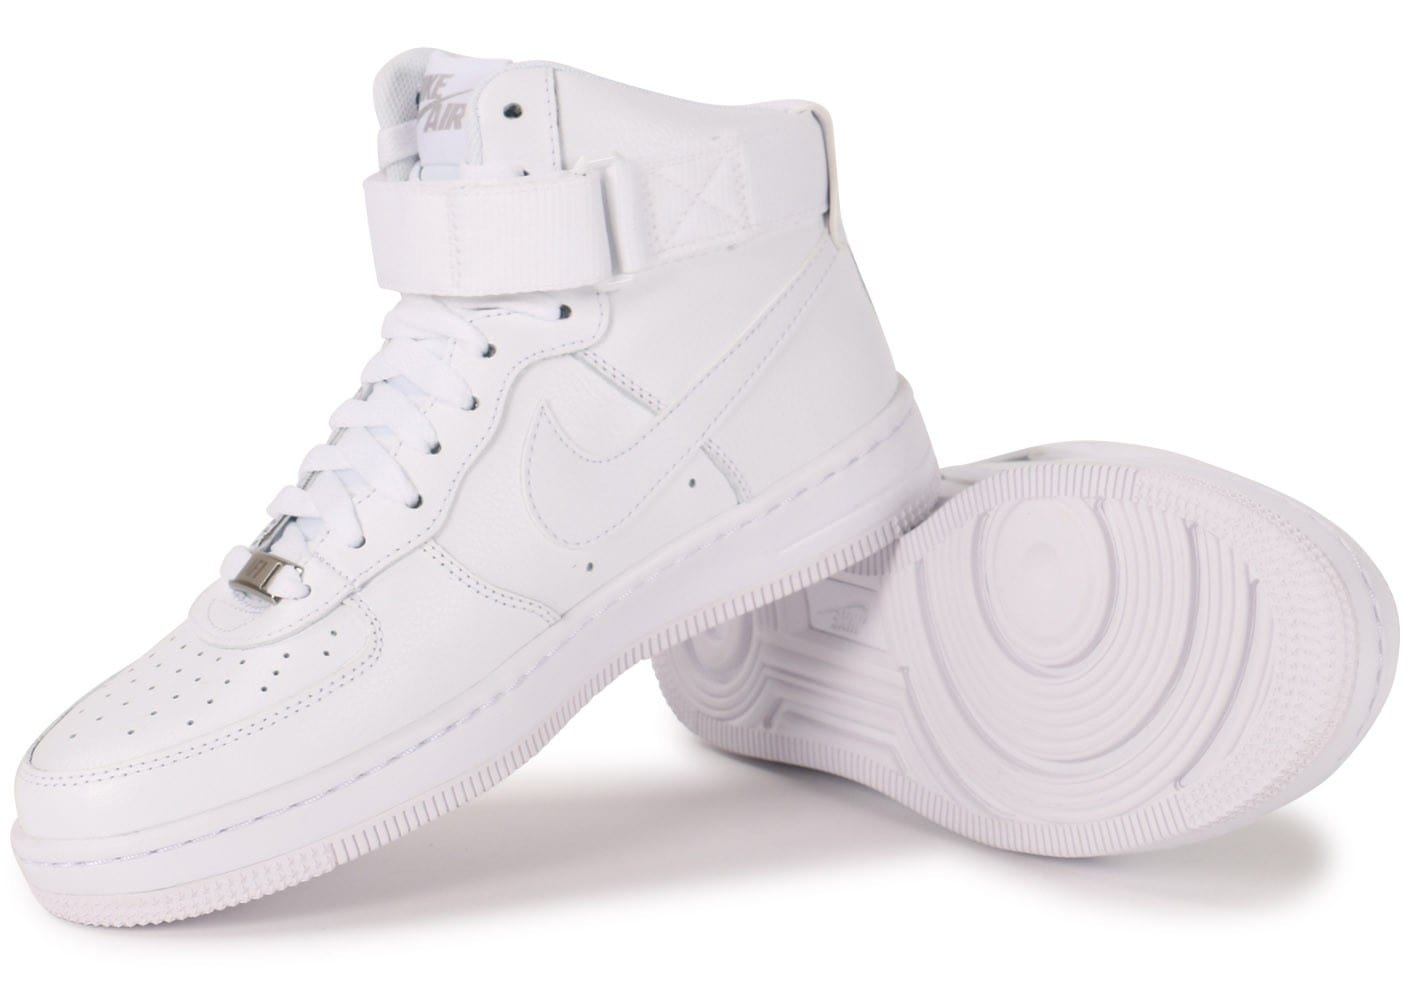 nike air force 1 ultra force blanche chaussures. Black Bedroom Furniture Sets. Home Design Ideas